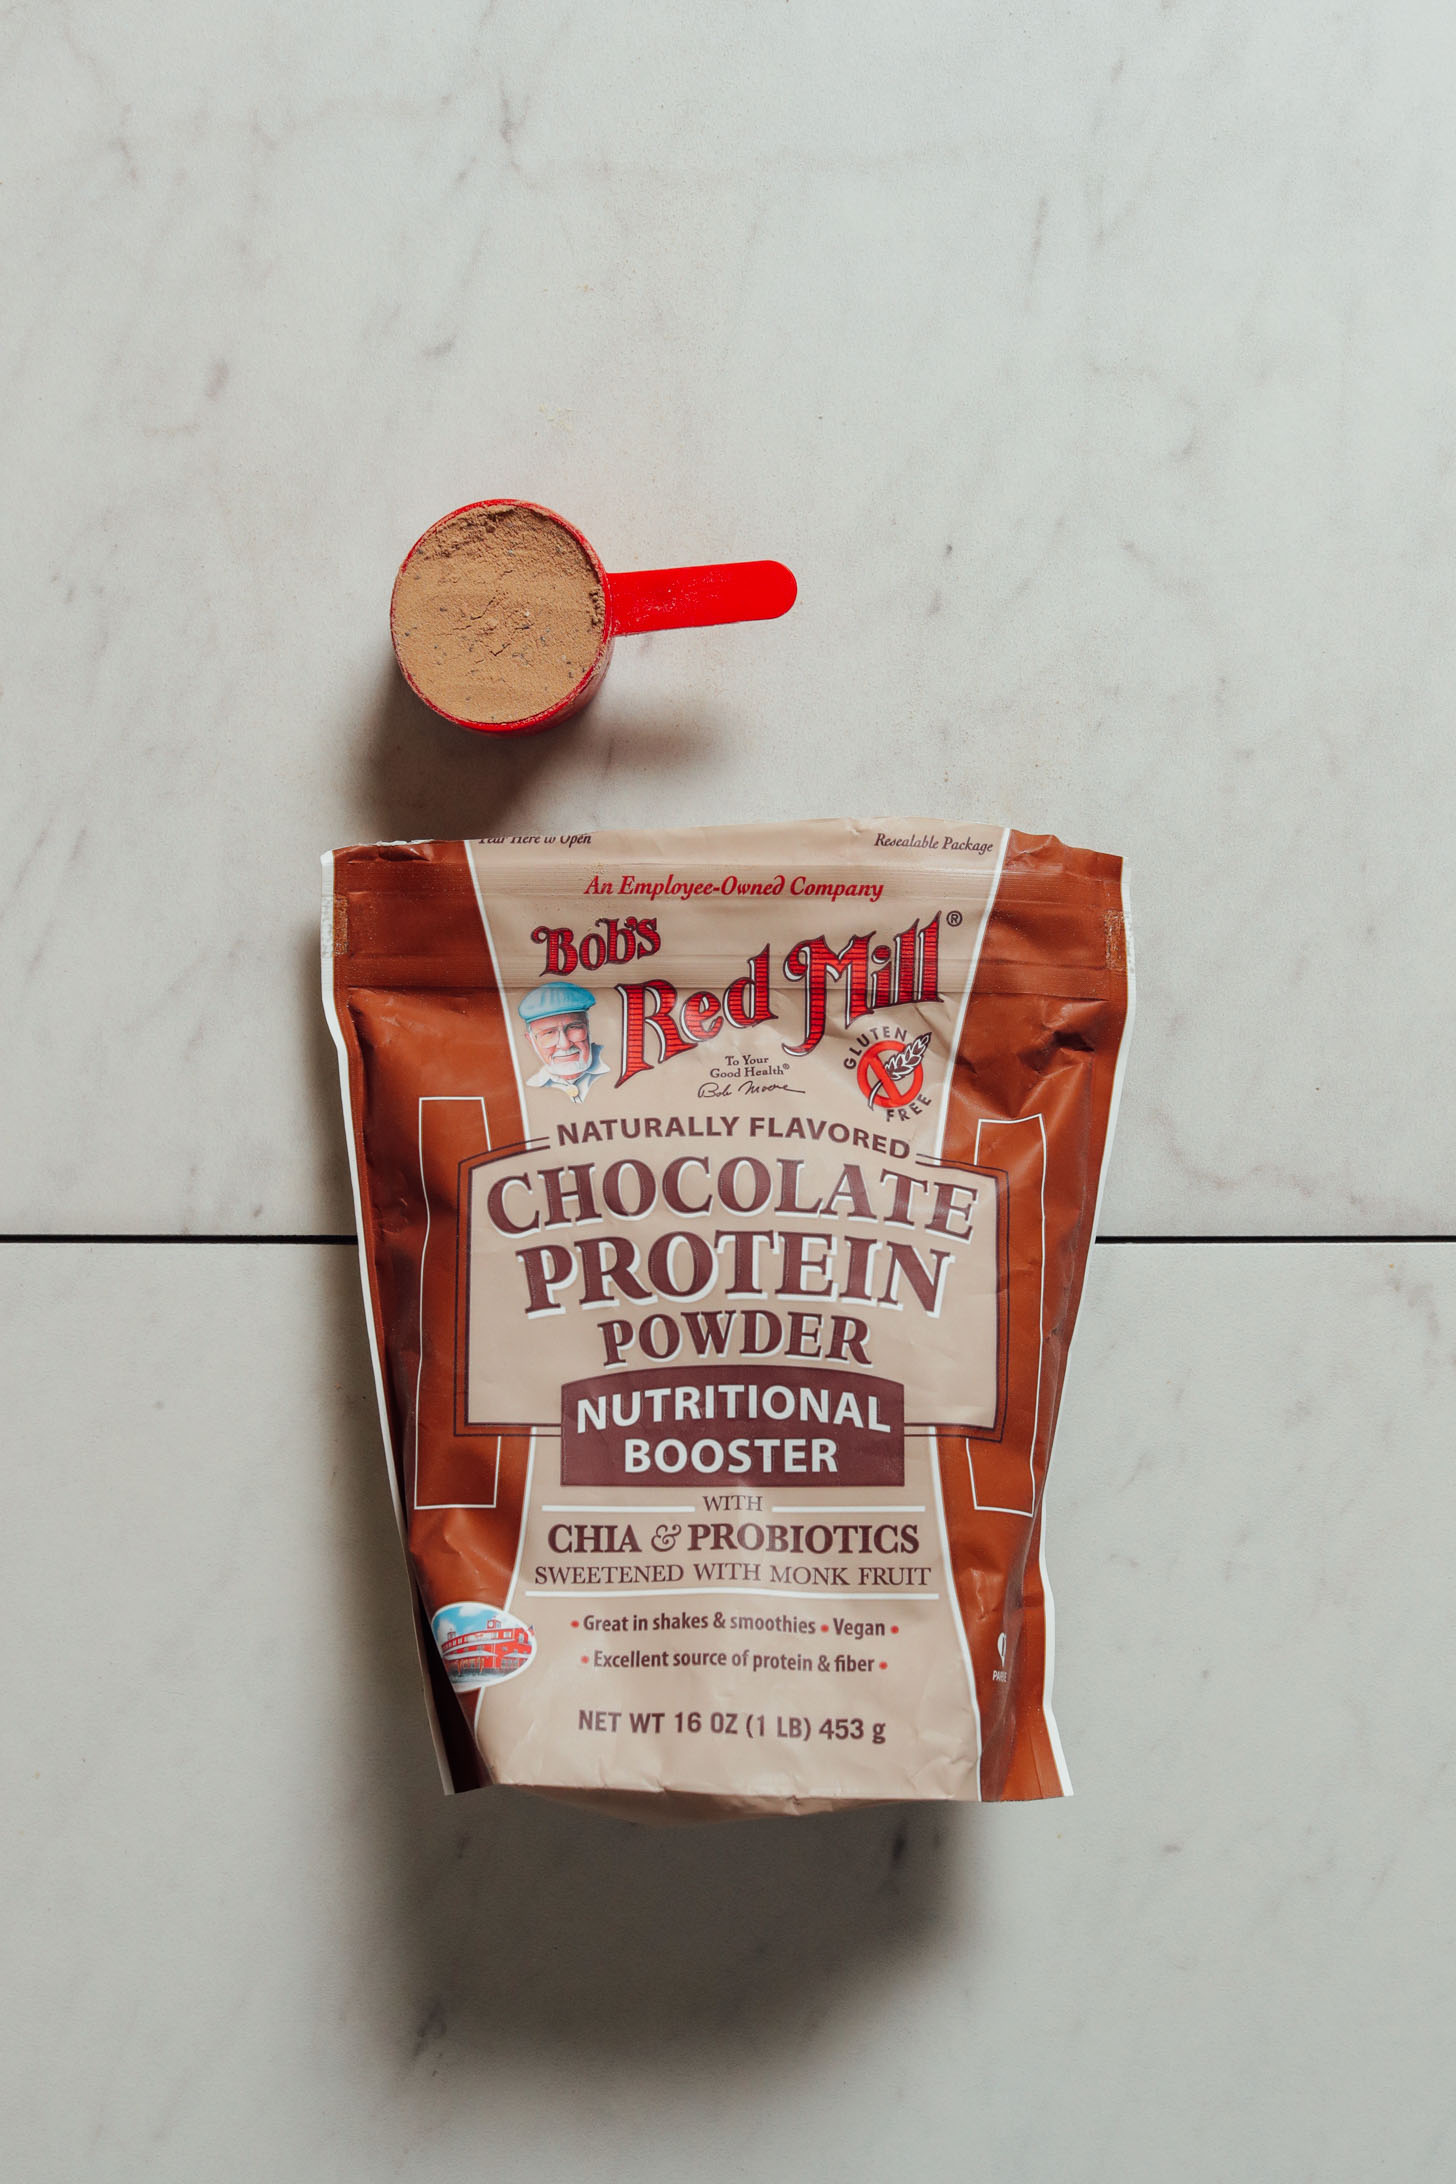 Pouch of Bob's Red Mill Chocolate Protein Powder for our plant-based review